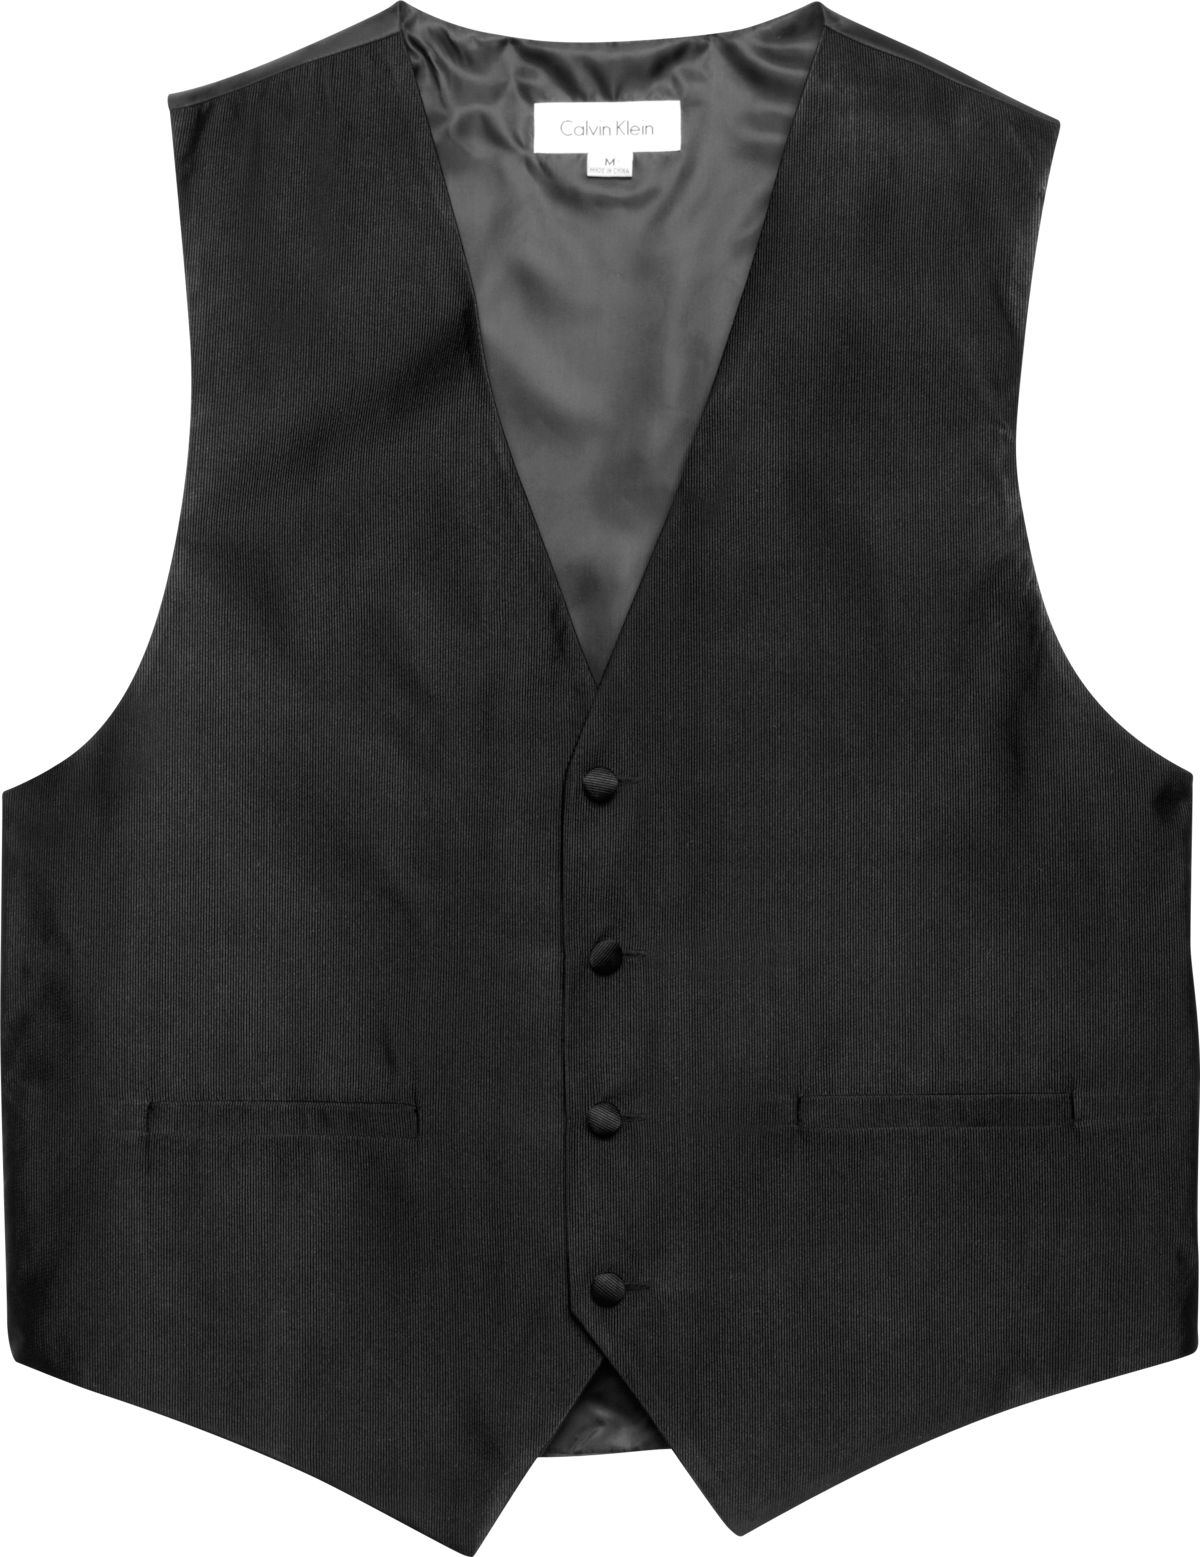 black single men in vest Formal wear tuxedo sales for men's and boys as well as uniform  why rent a tuxedo when you can buy for less at tuxedos online  geo black vest mens .